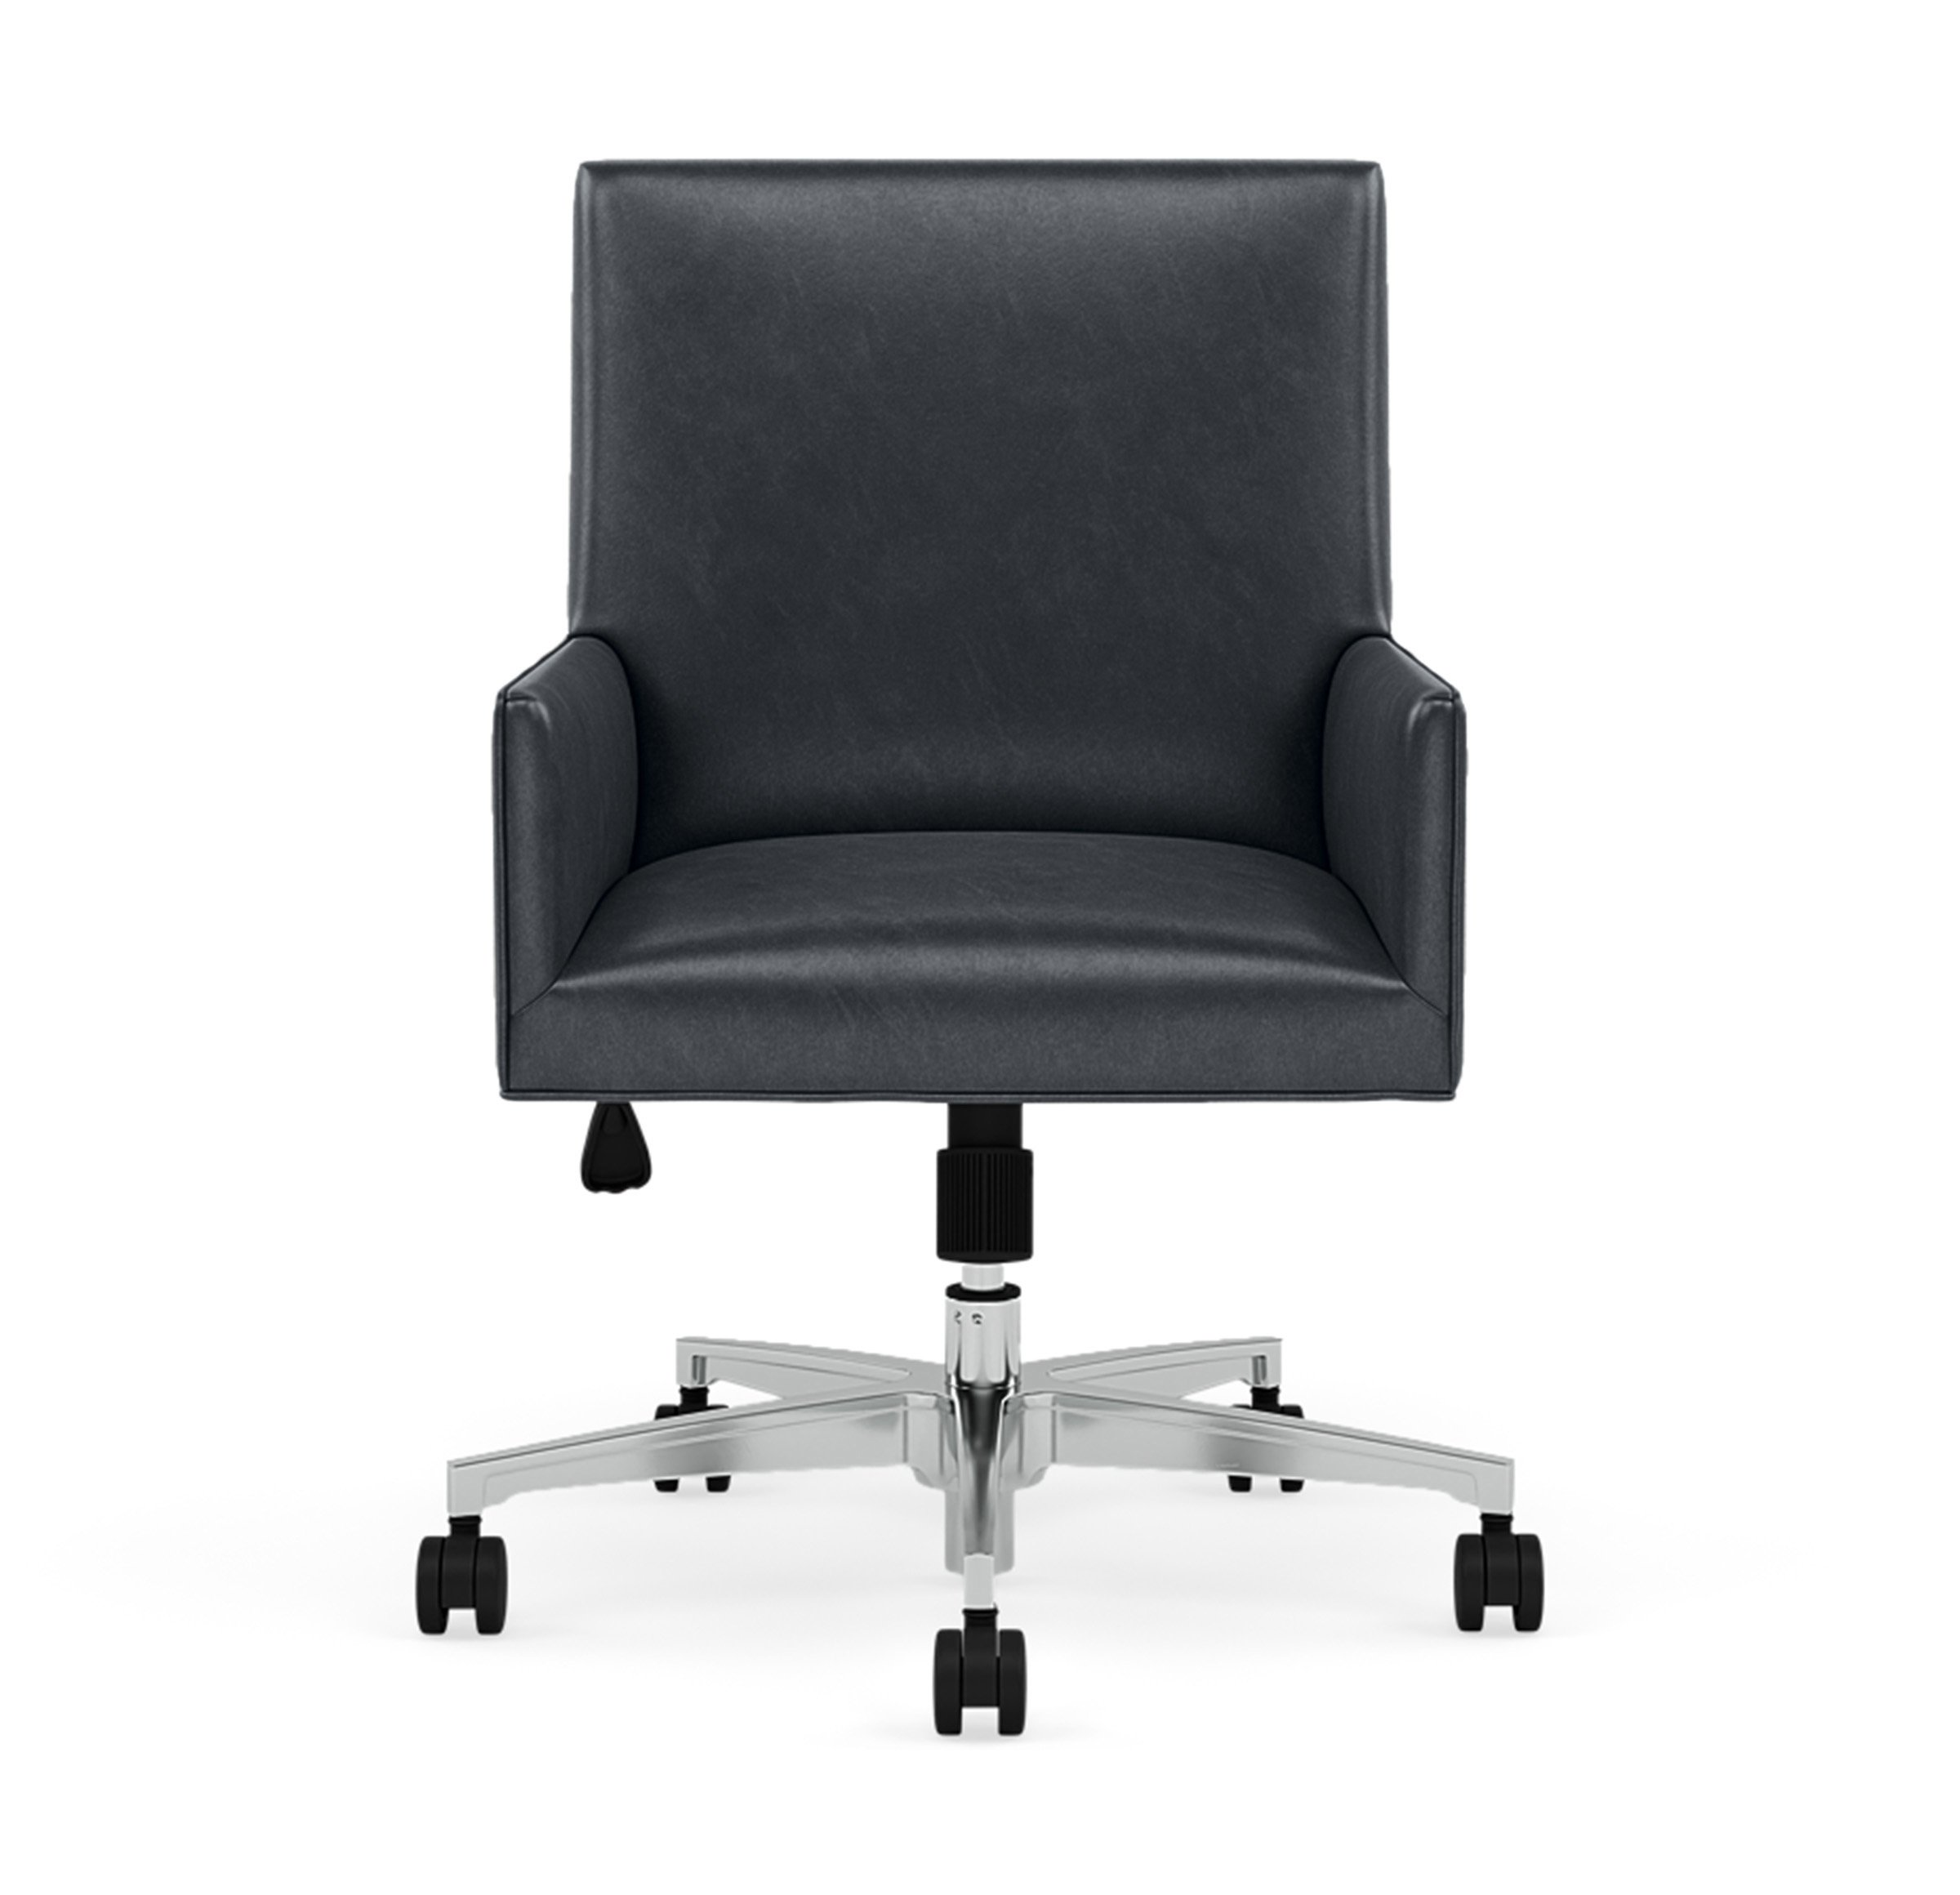 GAGE LEATHER DESK CHAIR, MONT BLANC - IRON, hi-res